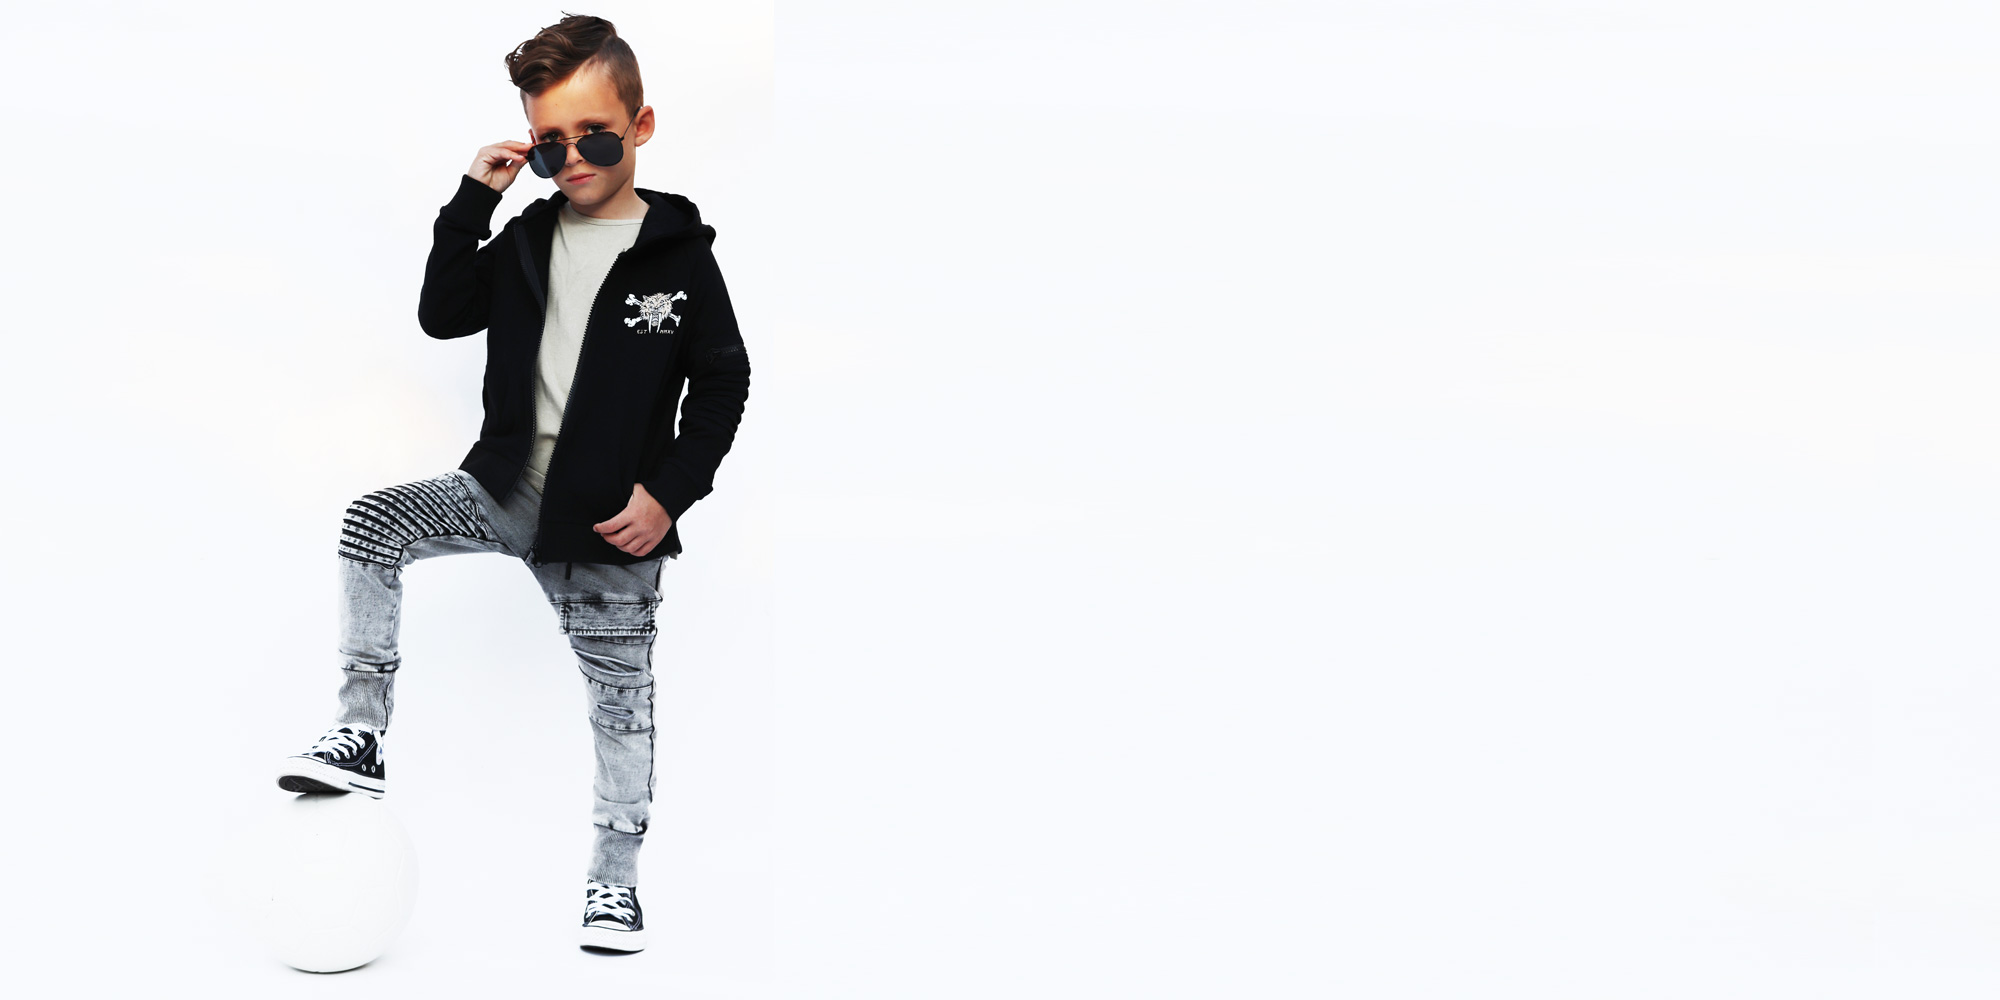 OOVY Cool Kids With Attitude Collection